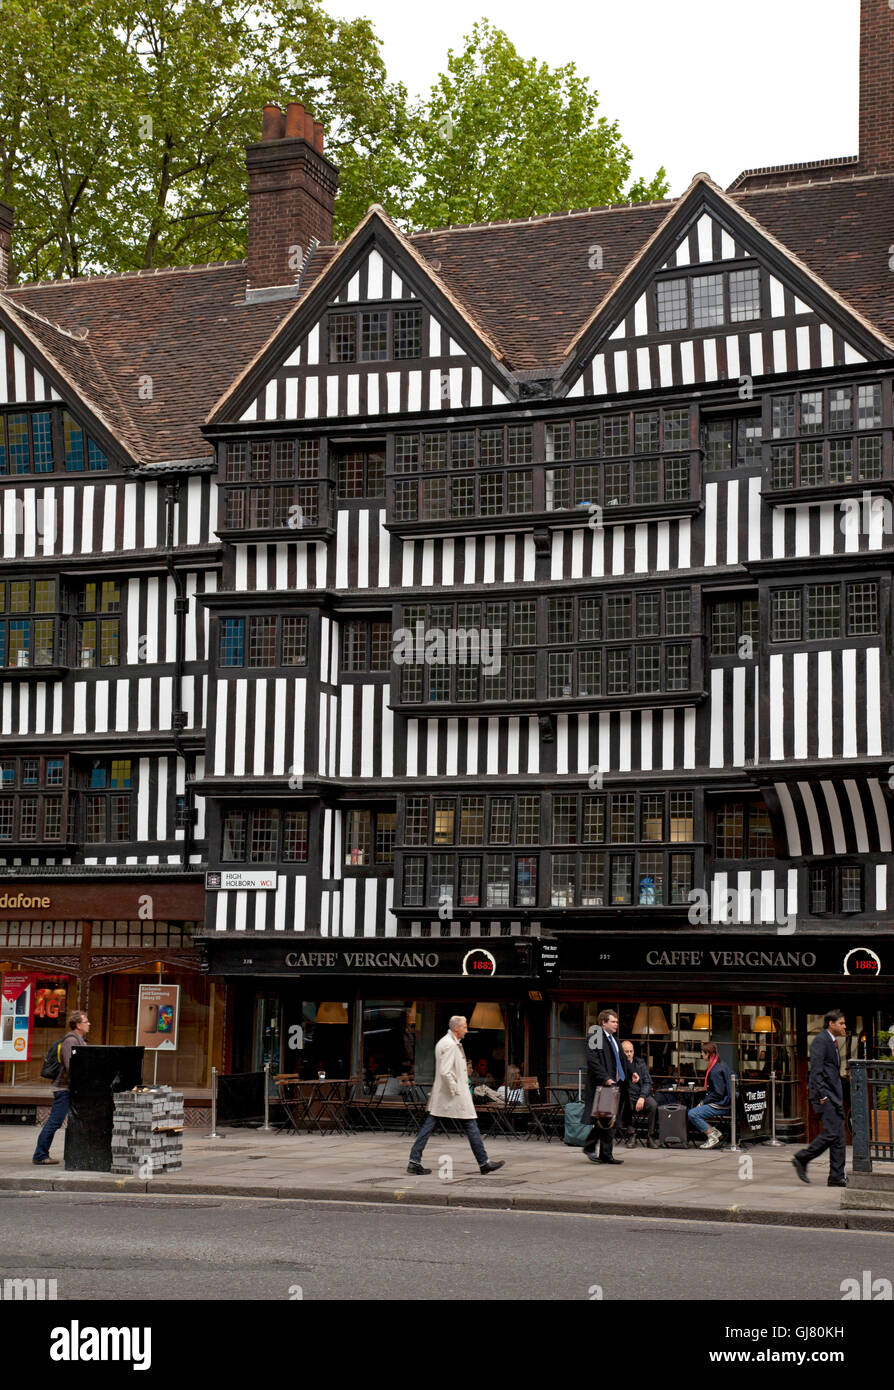 Inns of court, house, architecture, half-timbered - Stock Image